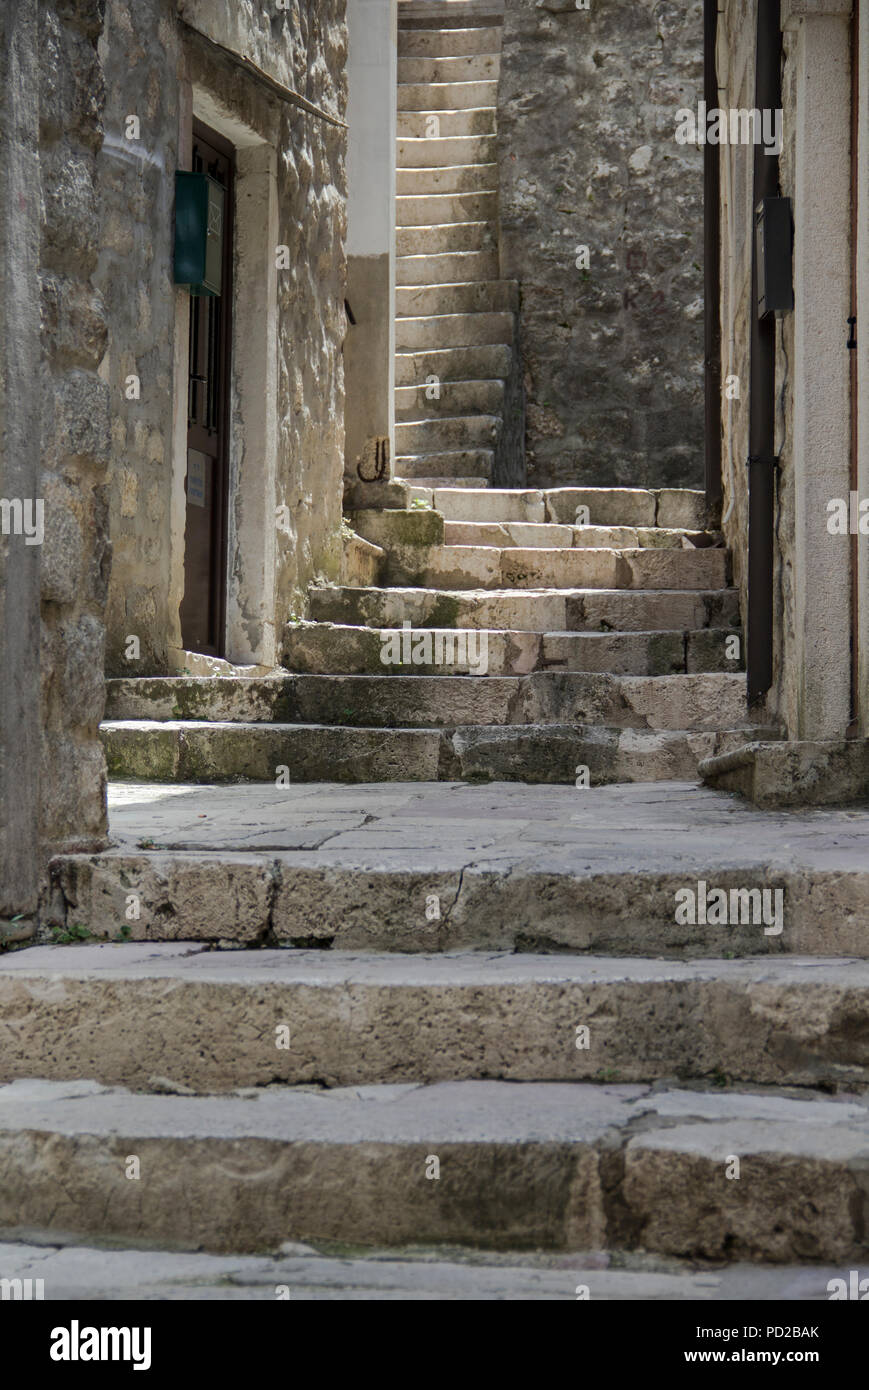 Scenes With Stairs In Mediterranean City Stock Photo